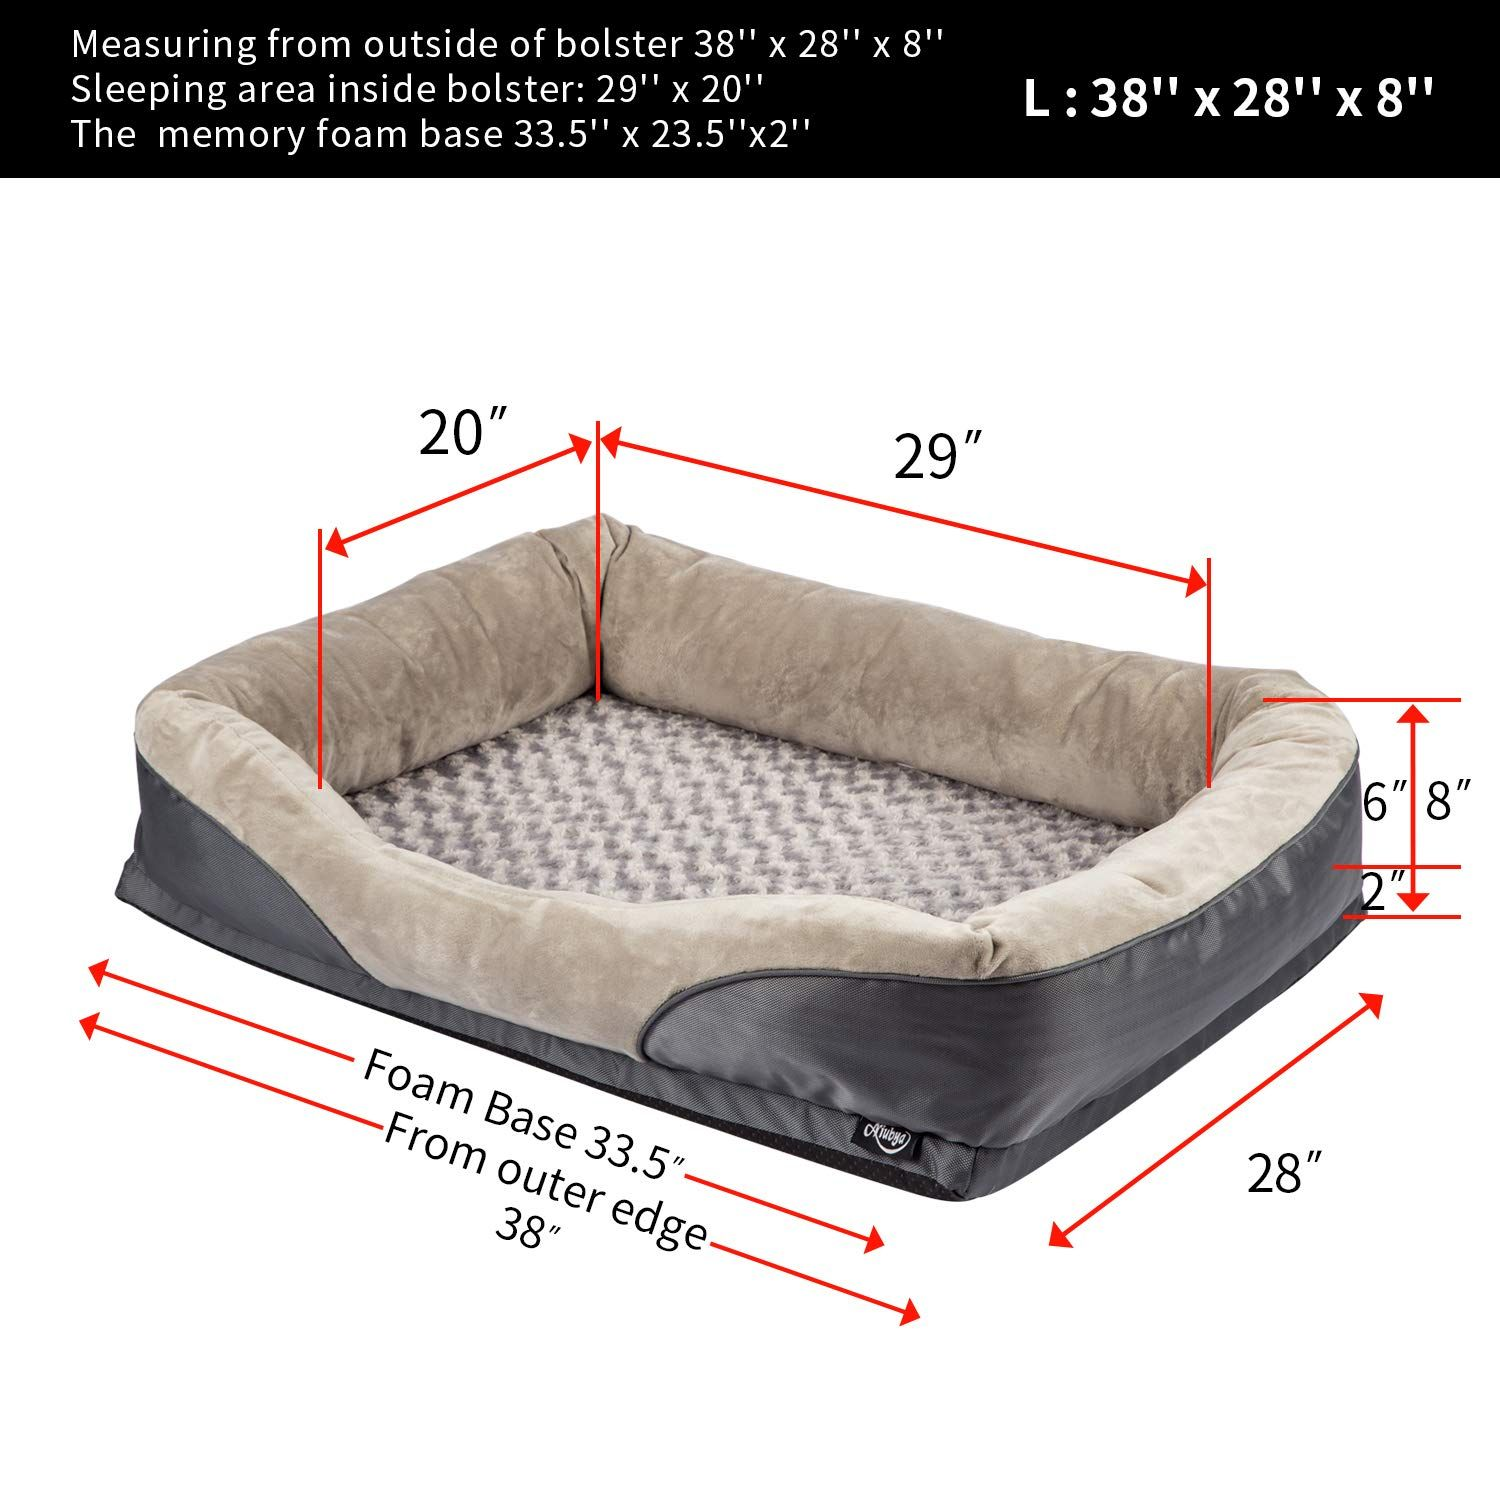 Niubya Orthopedic Dog Bed Removable Washable Cover Memory Foam Dog Bed Pillows Durable Water Proof Liner P Dog Pillow Bed Dog Bed Furniture Memory Foam Dog Bed